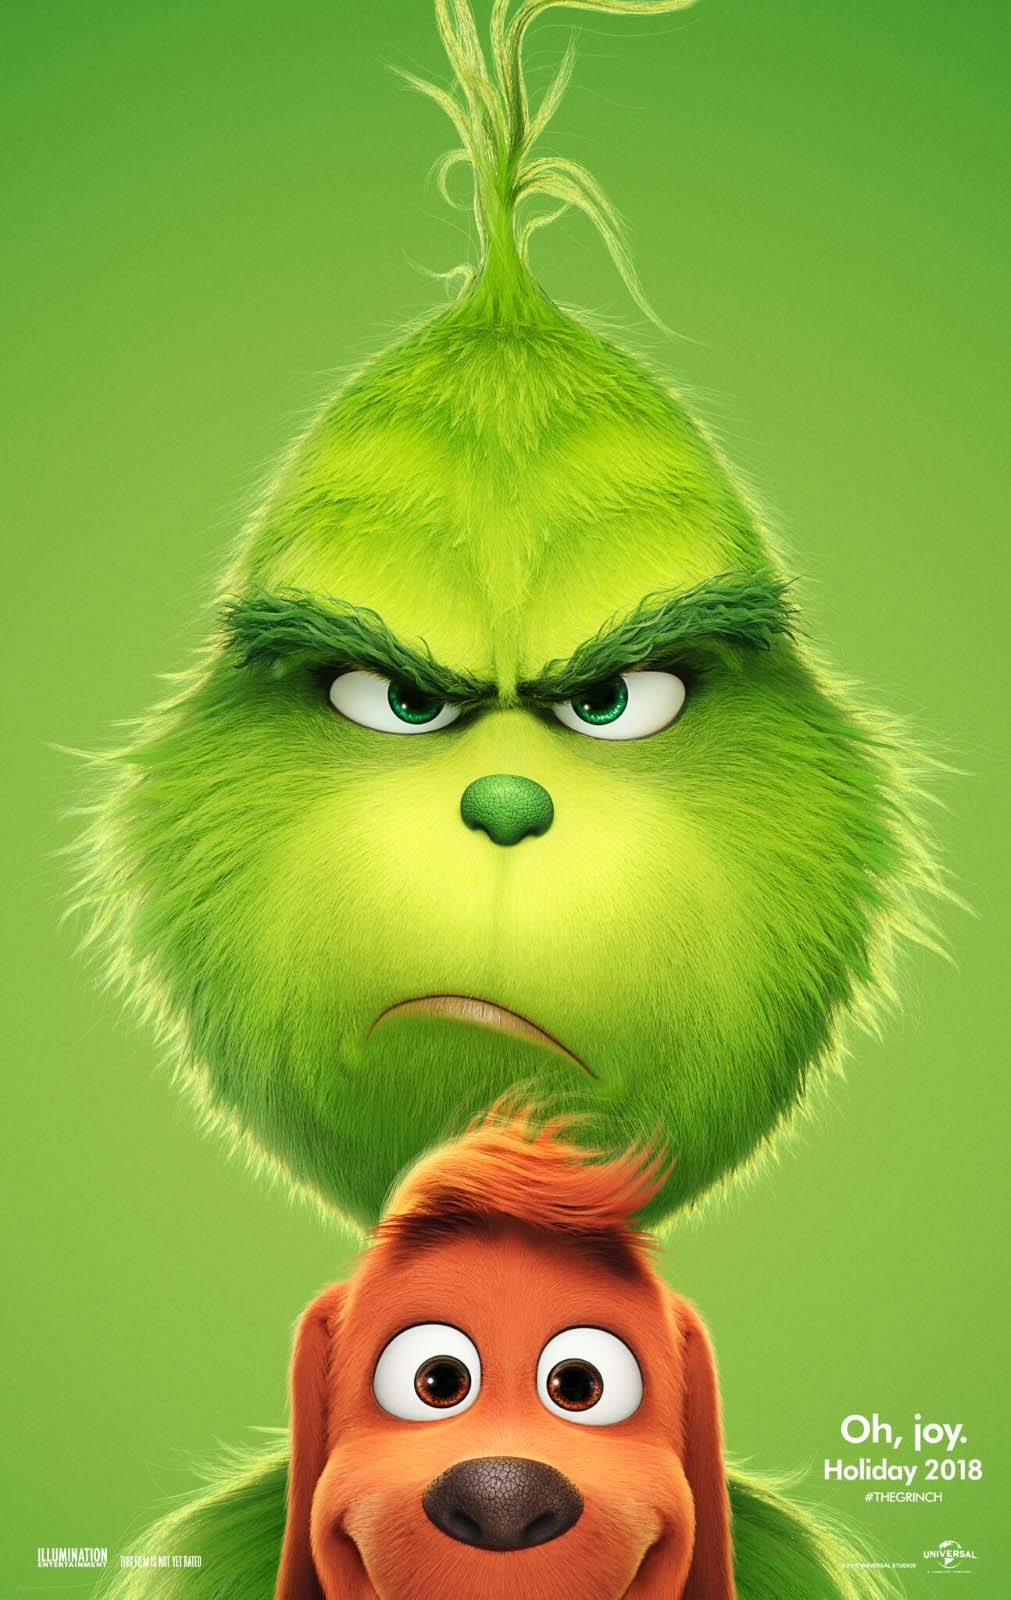 The Grinch 2018 Full Movie Free Online